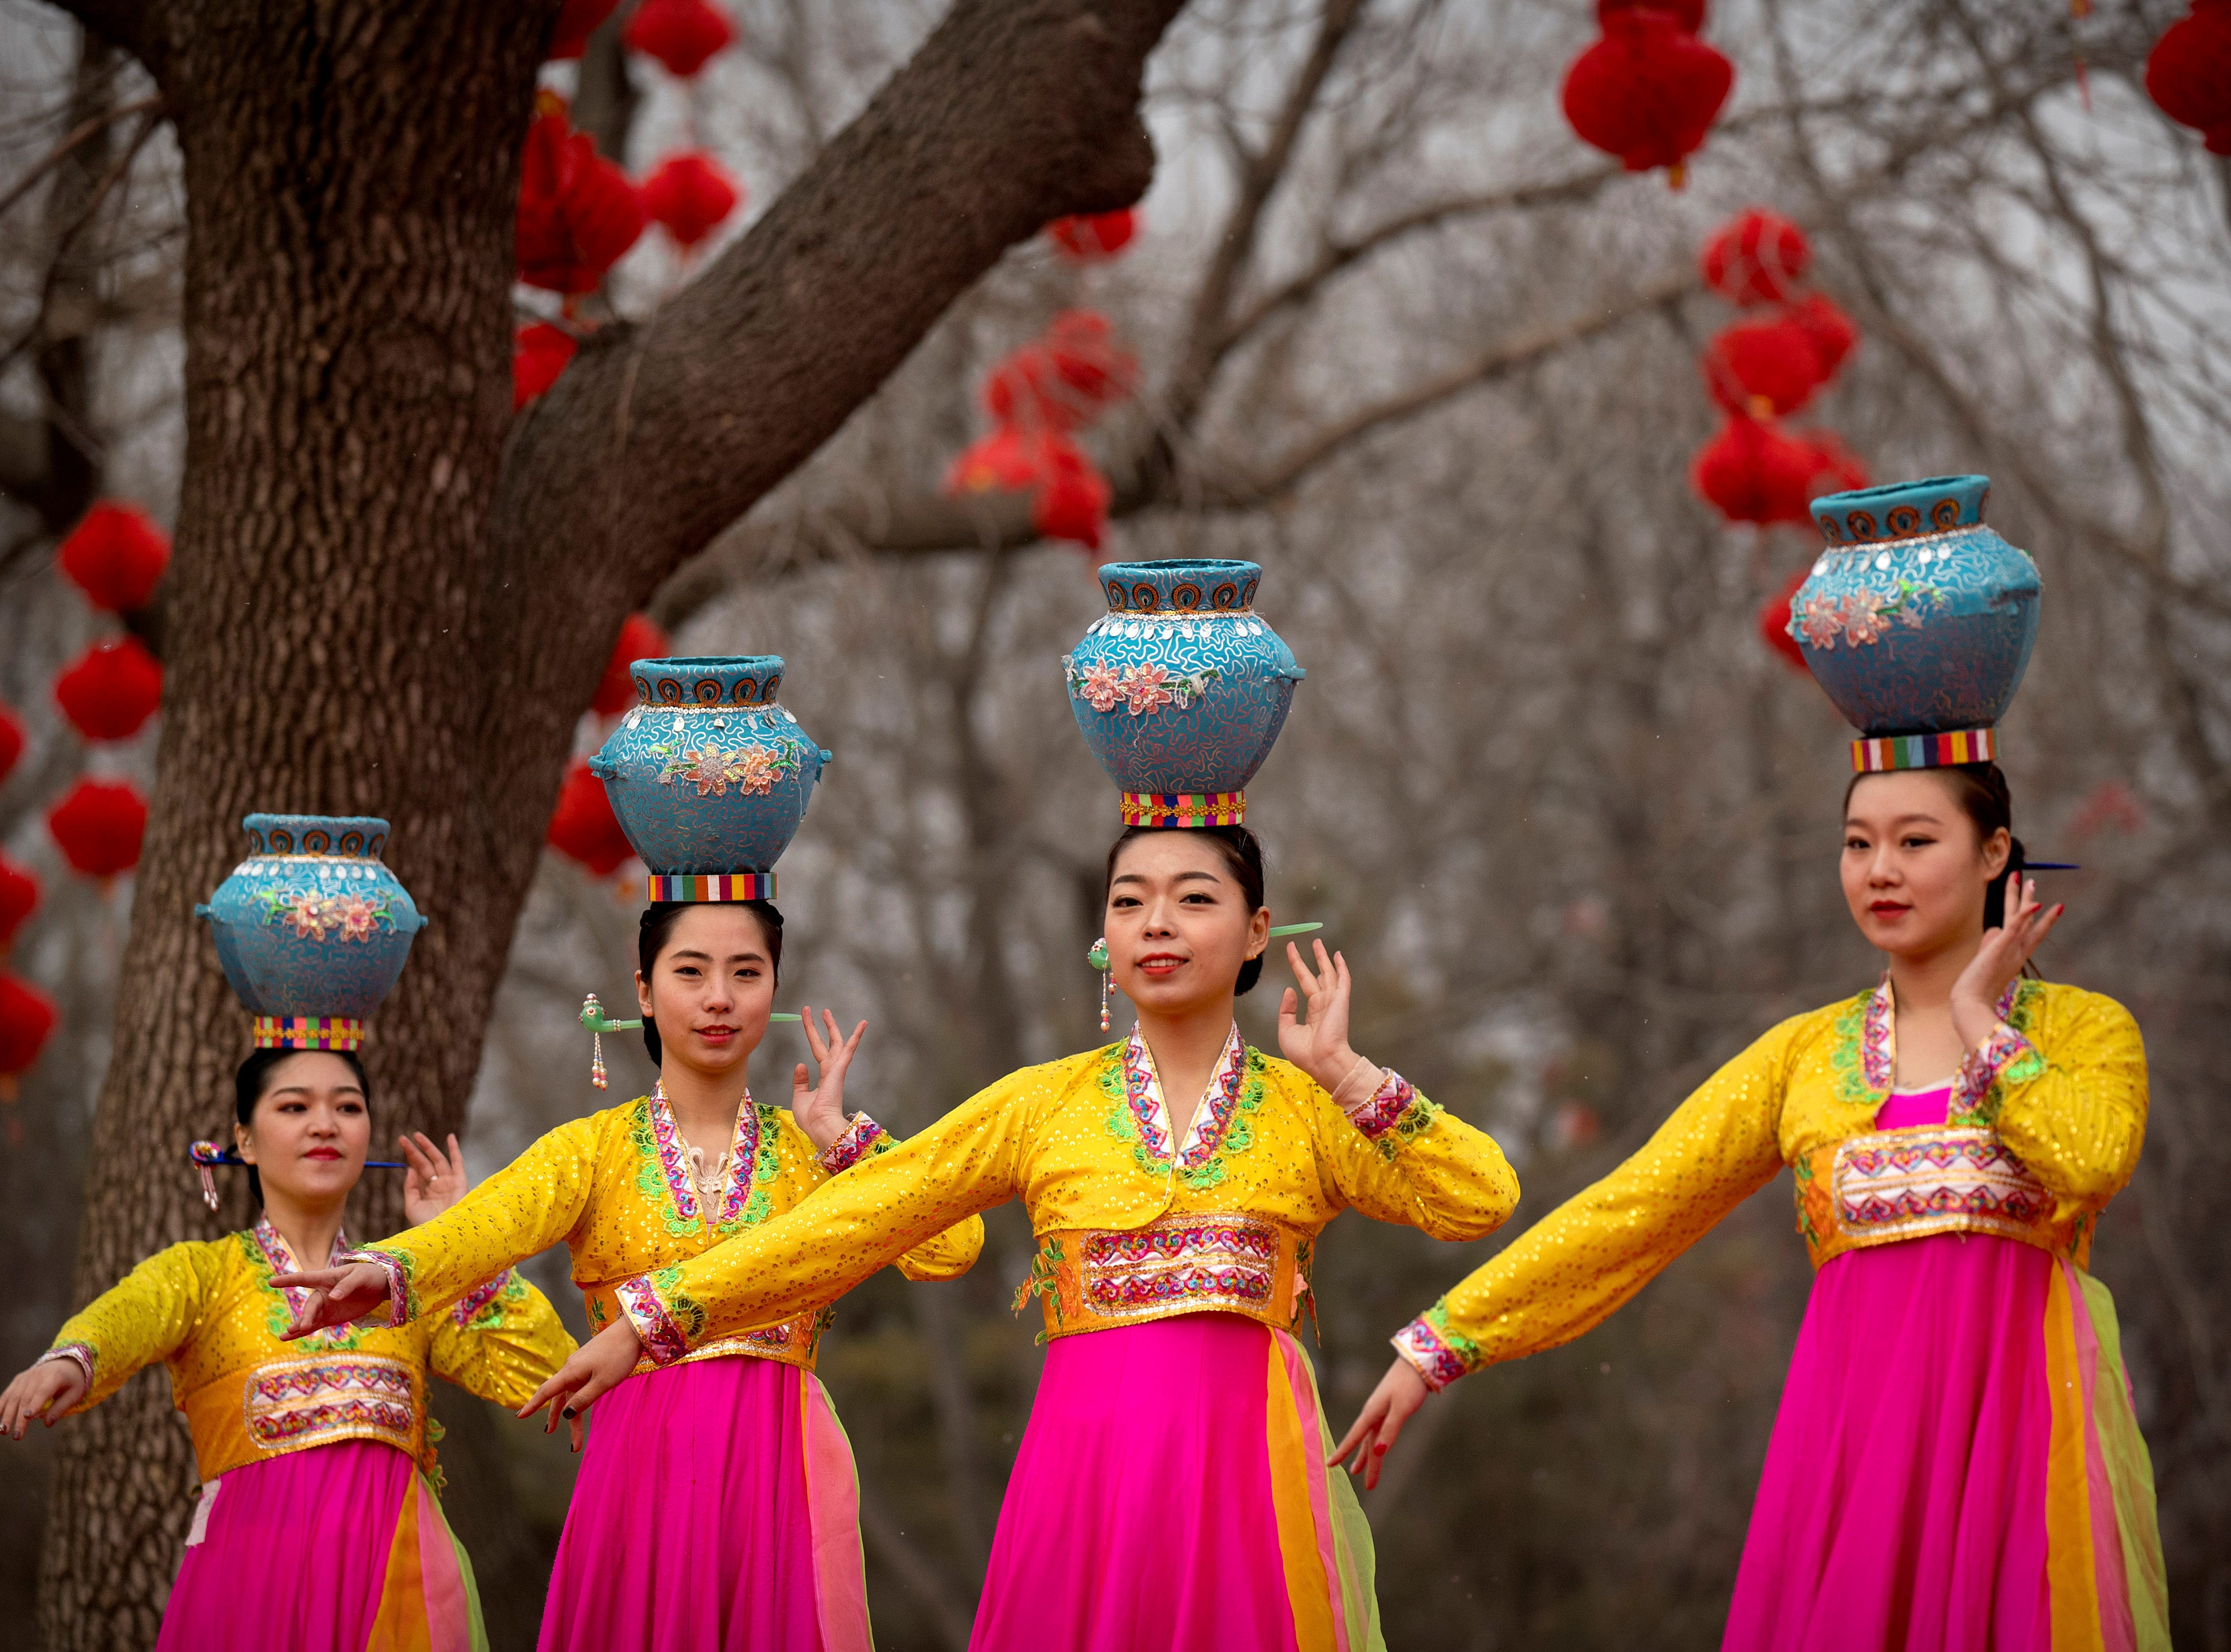 Dancers in traditional ethnic clothing perform at a temple fair at Longtan Park in Beijing, Wednesday, Feb. 6, 2019. China is celebrating the second day of the Lunar New Year on Tuesday, the Year of the Pig on the Chinese zodiac.